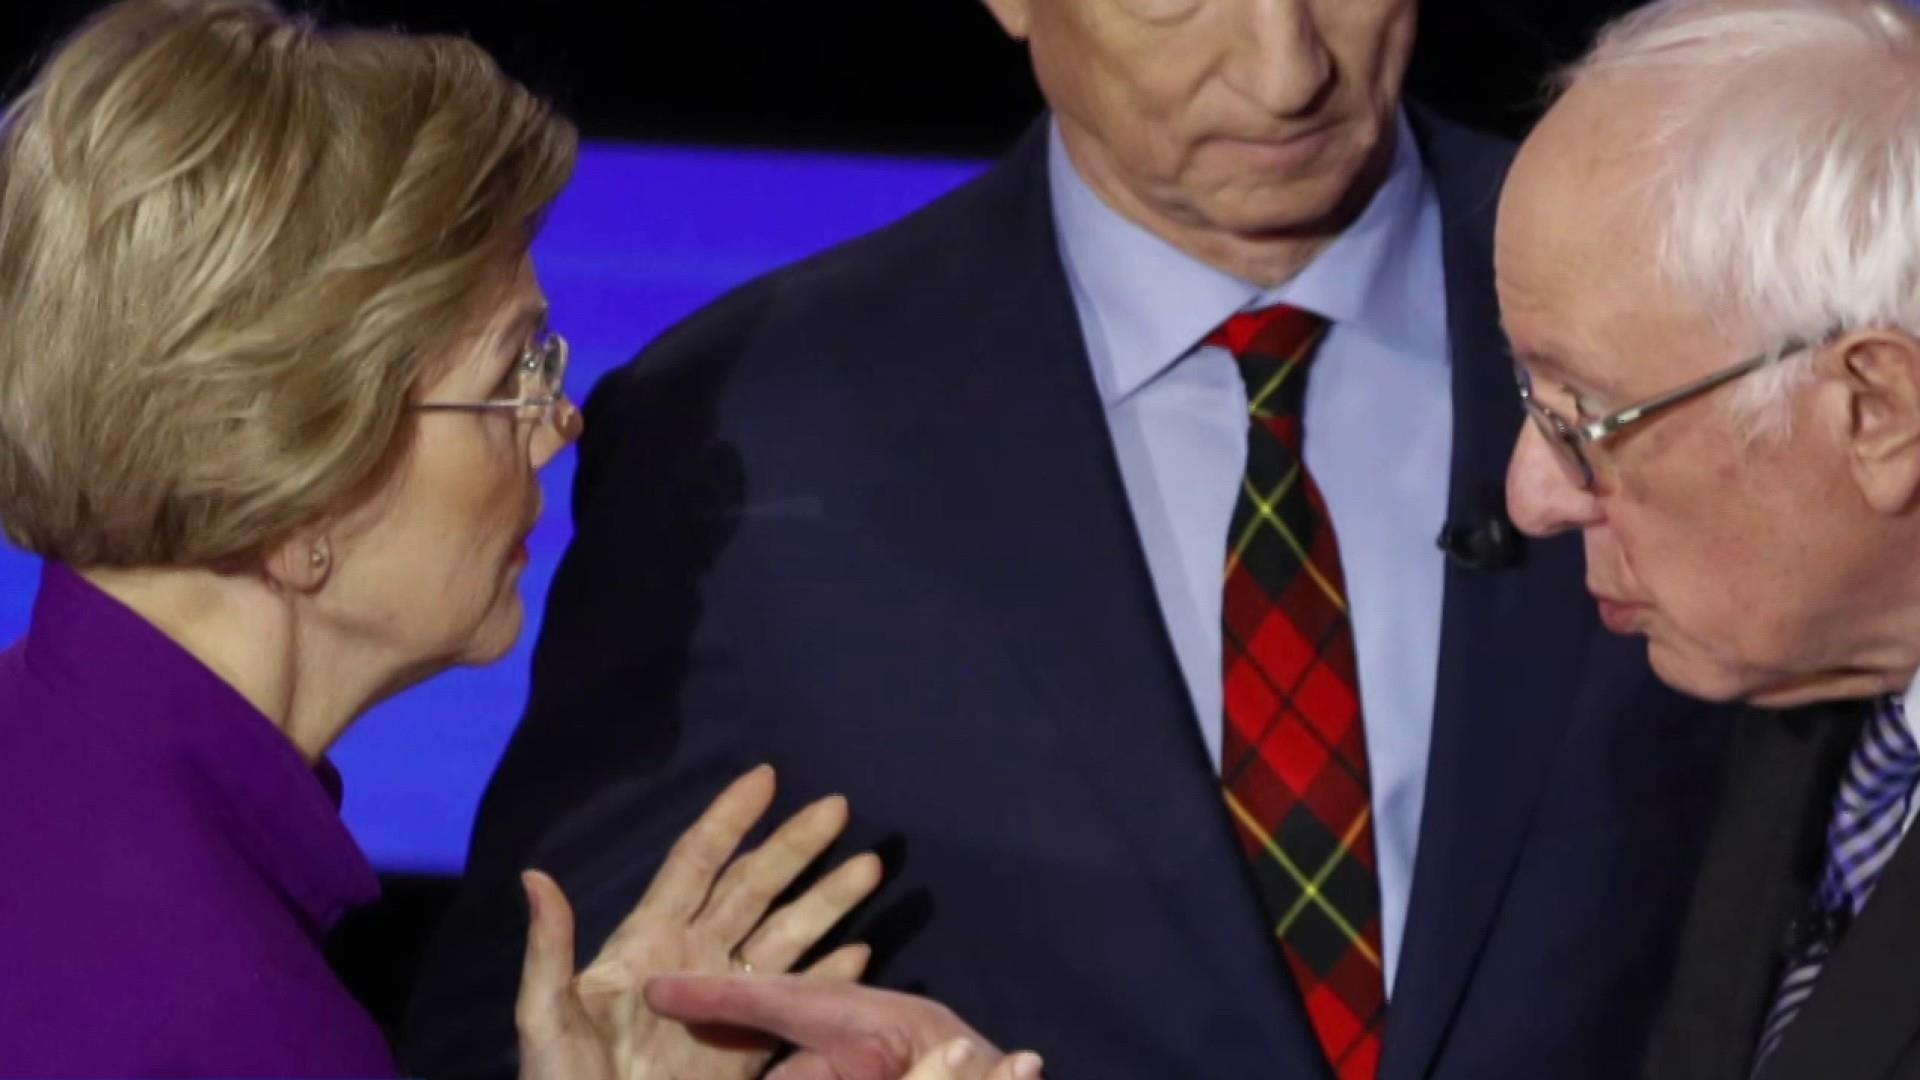 Warren accusing Sanders of calling her a liar analyzed by experts